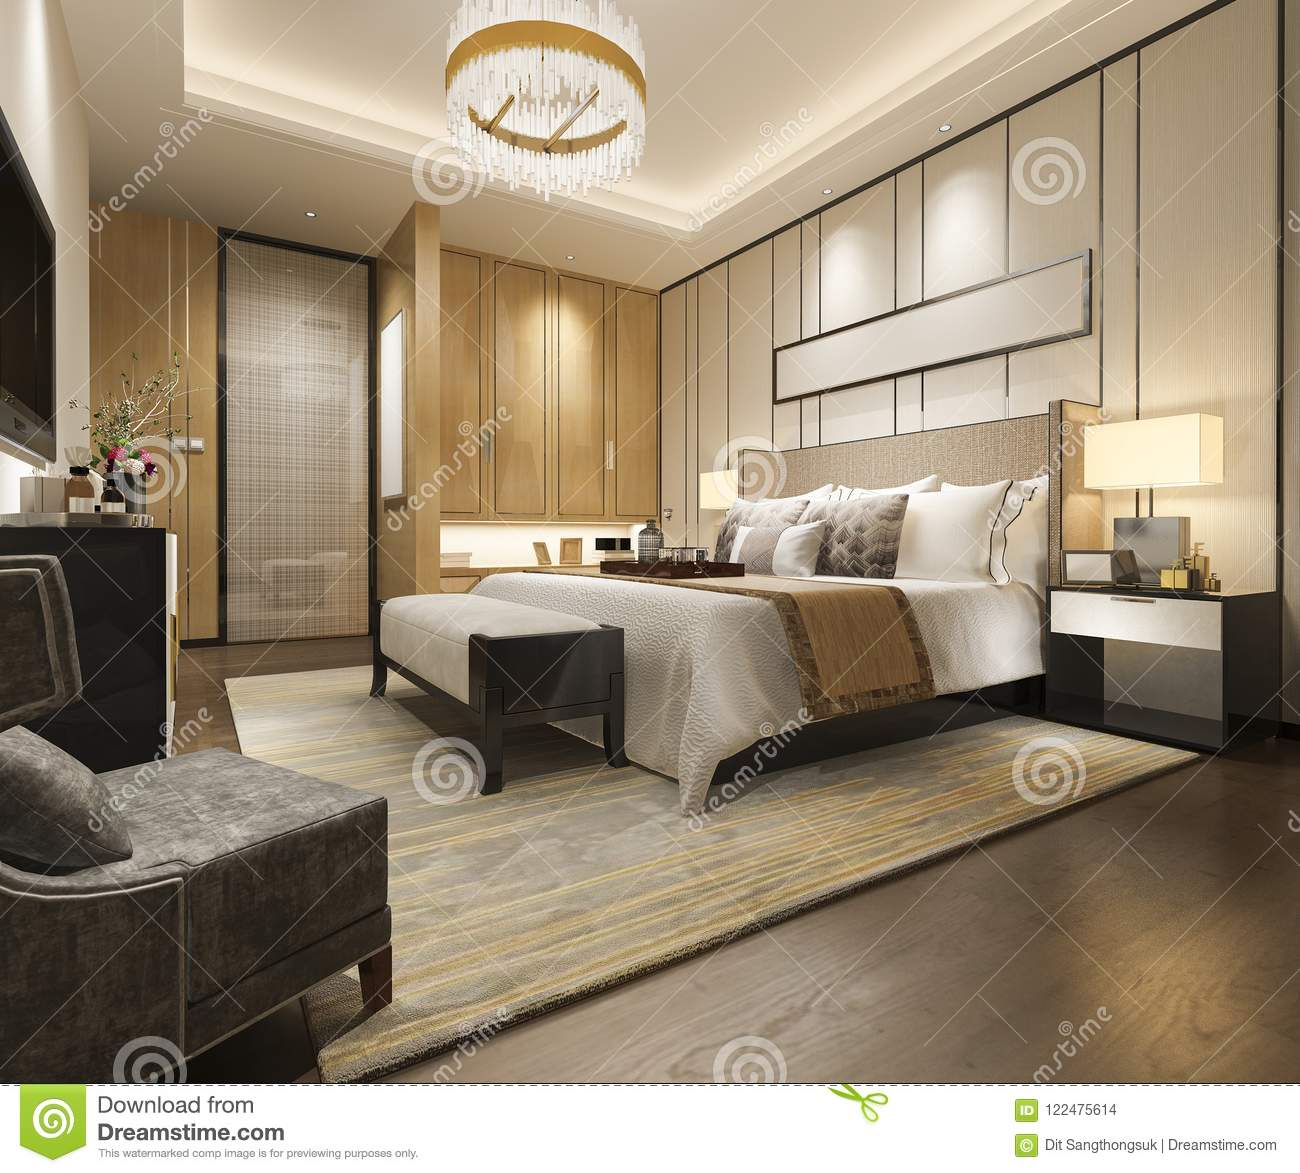 3d rendering luxury modern bedroom suite in hotel with - Hotel interior and exterior design ...